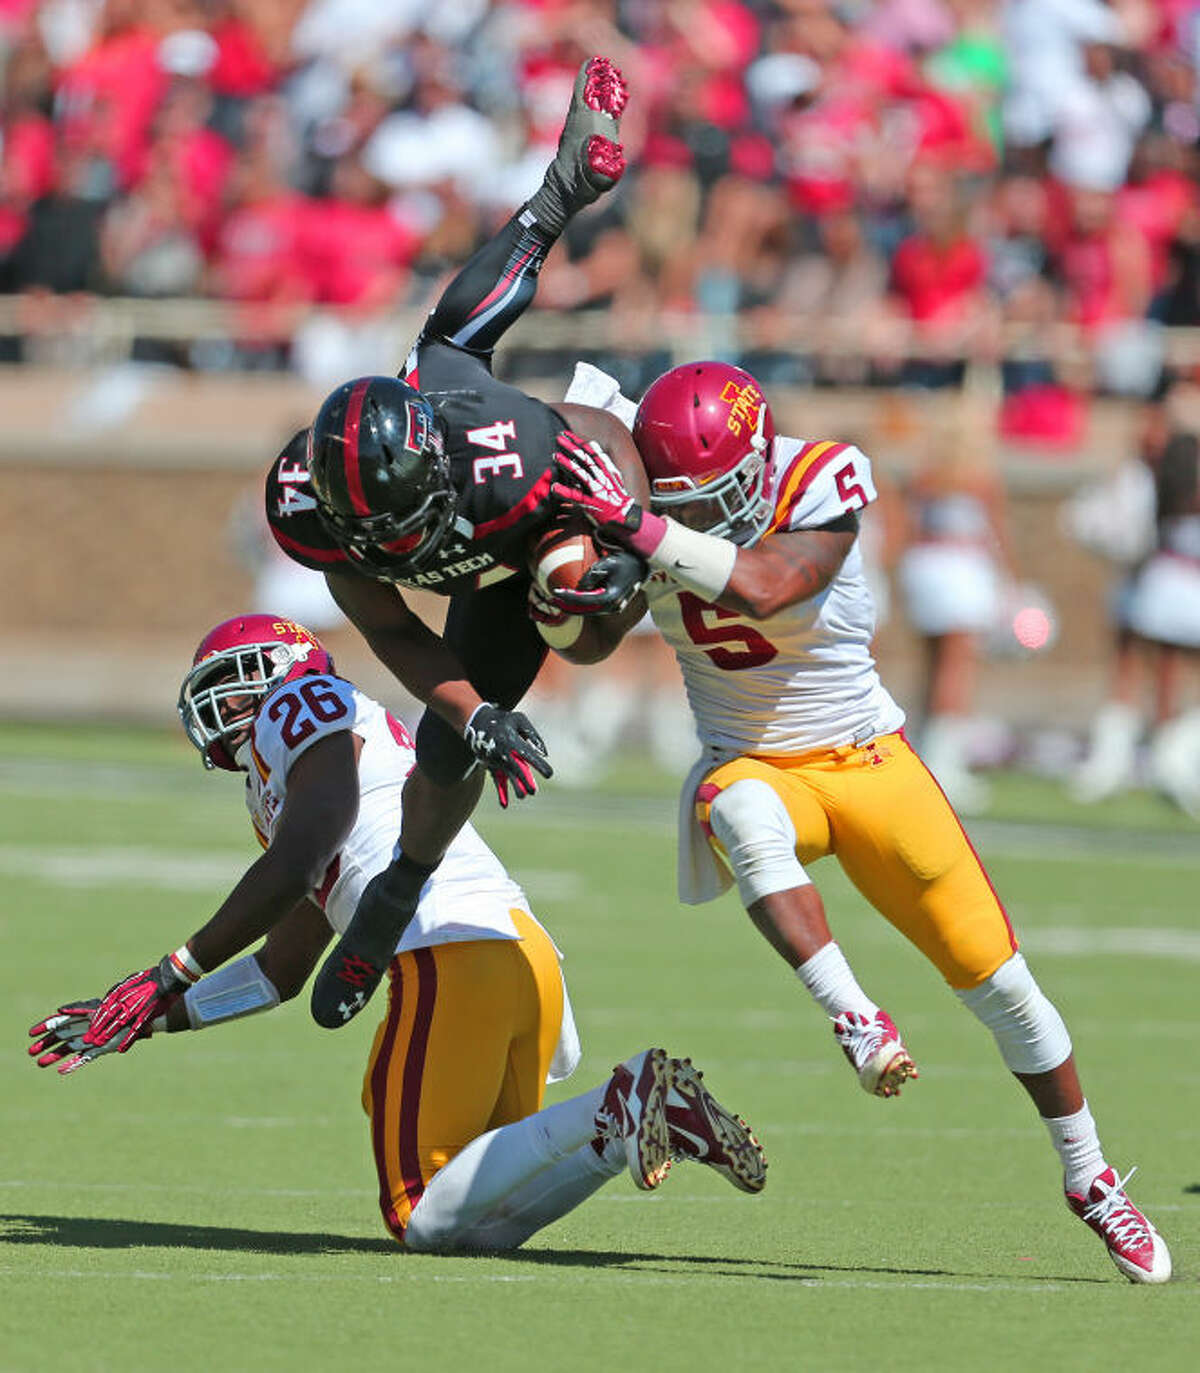 Texas Tech running back Kenny Williams (34) hurdles an Iowa State defender prior to being tackled after a large gain in Big 12 action on Oct. 12, 2013 at Lubbock's Jones AT&T Stadium. Wade H. Clay/Special to the MRT